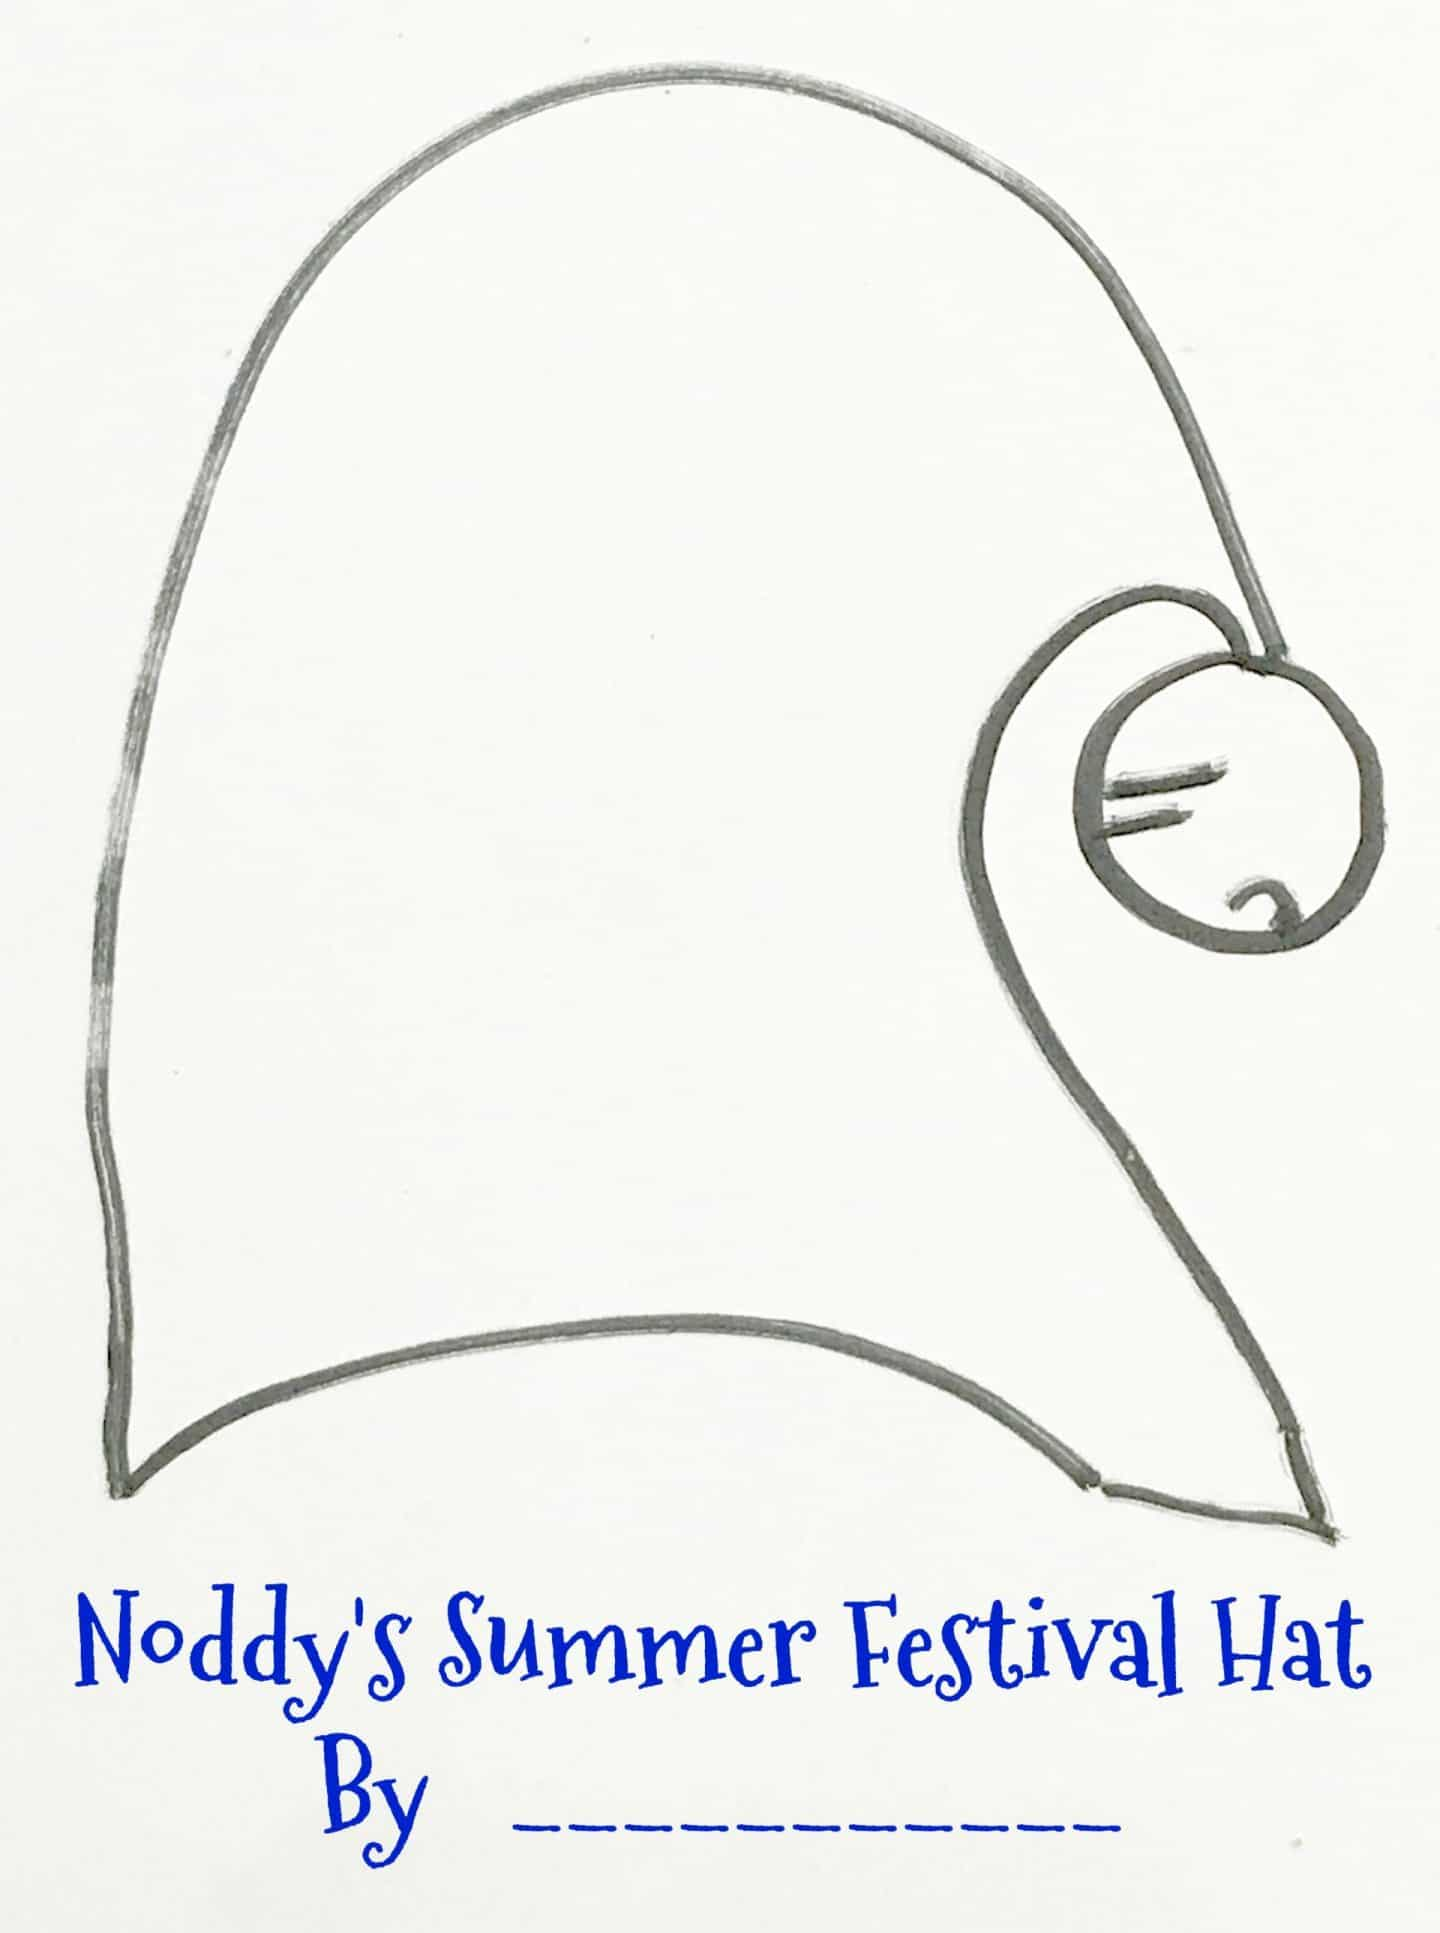 Can you decorate Noddy's Hat ready for the Toytown summer festival? #NoddyChallenge